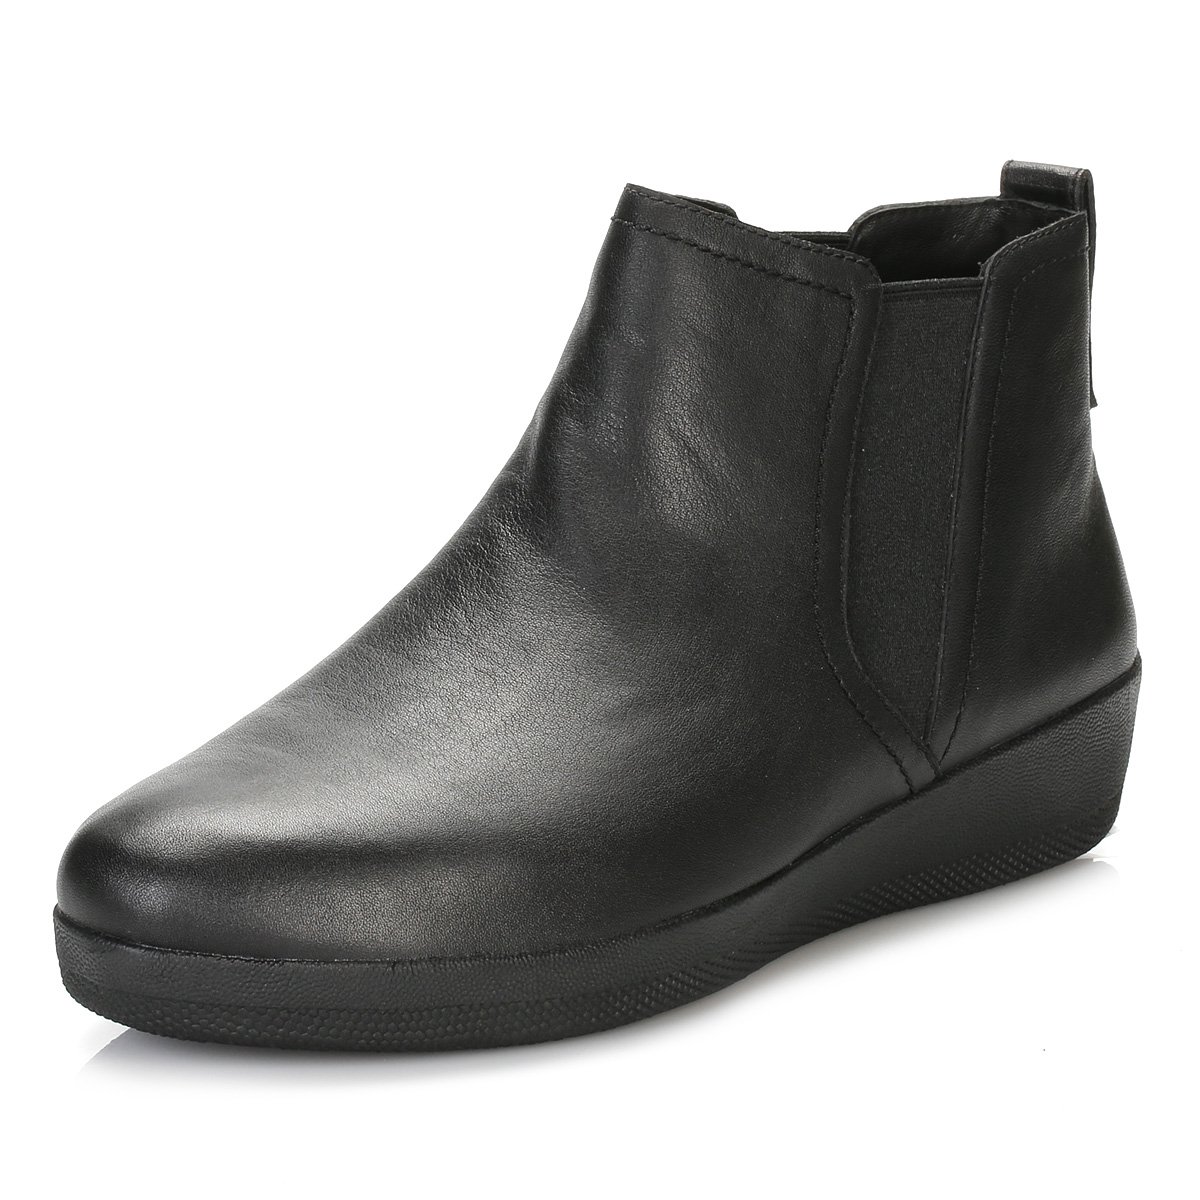 Browse Dune London's range of ladies chelsea boots. This classic is the perfect investment and a stylish essential that will last from season to season. black Ruched Chelsea Ankle Boot. £ head over heels QUICK VIEW. prias - black Ruched Chelsea Ankle Boot. £ All Ladies Boots Filter by: Clear All Filters. Apply Filter.